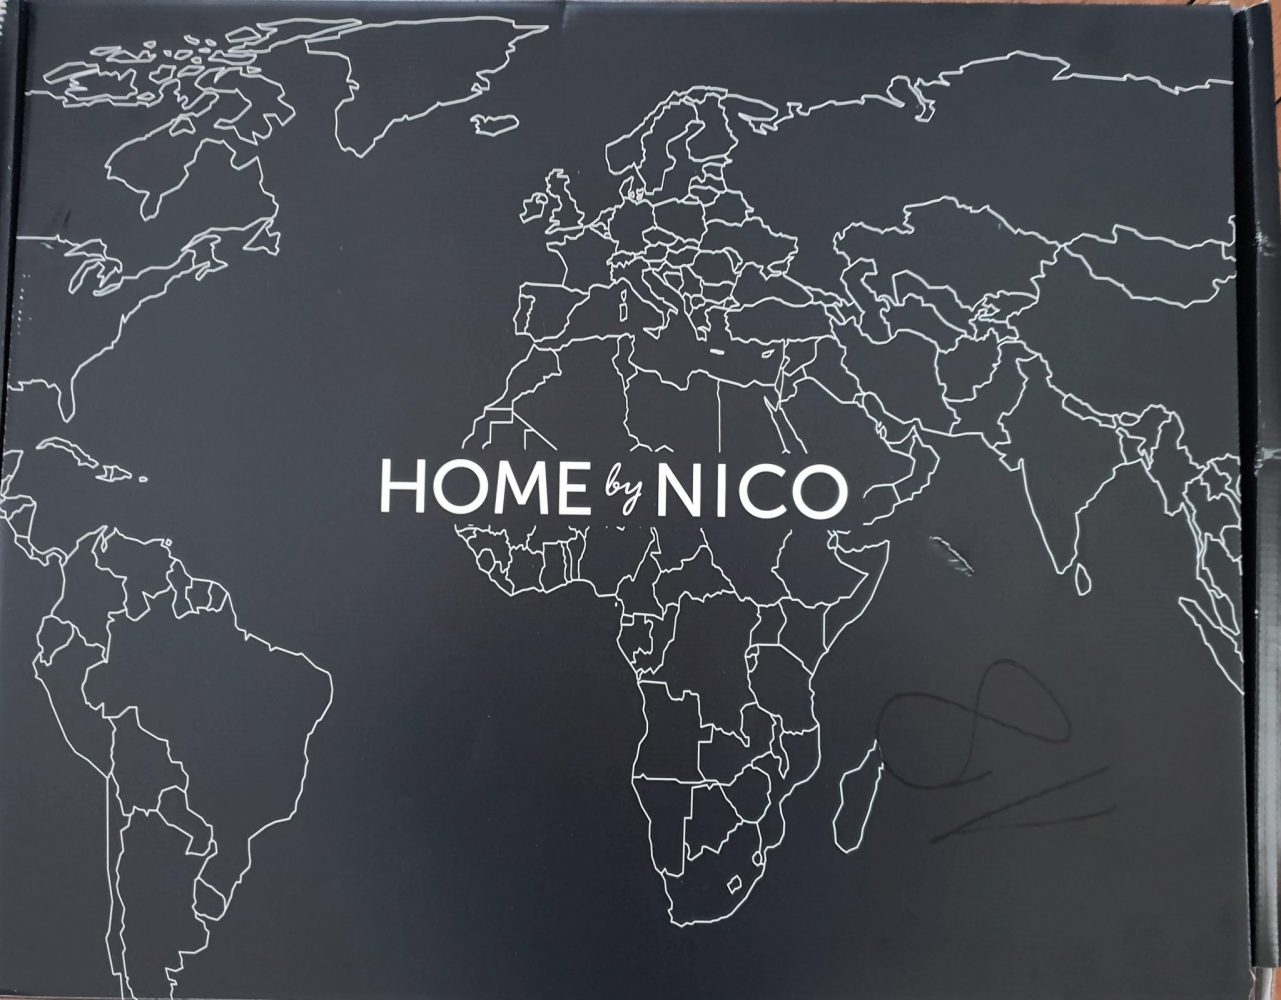 Home By Nico packaging